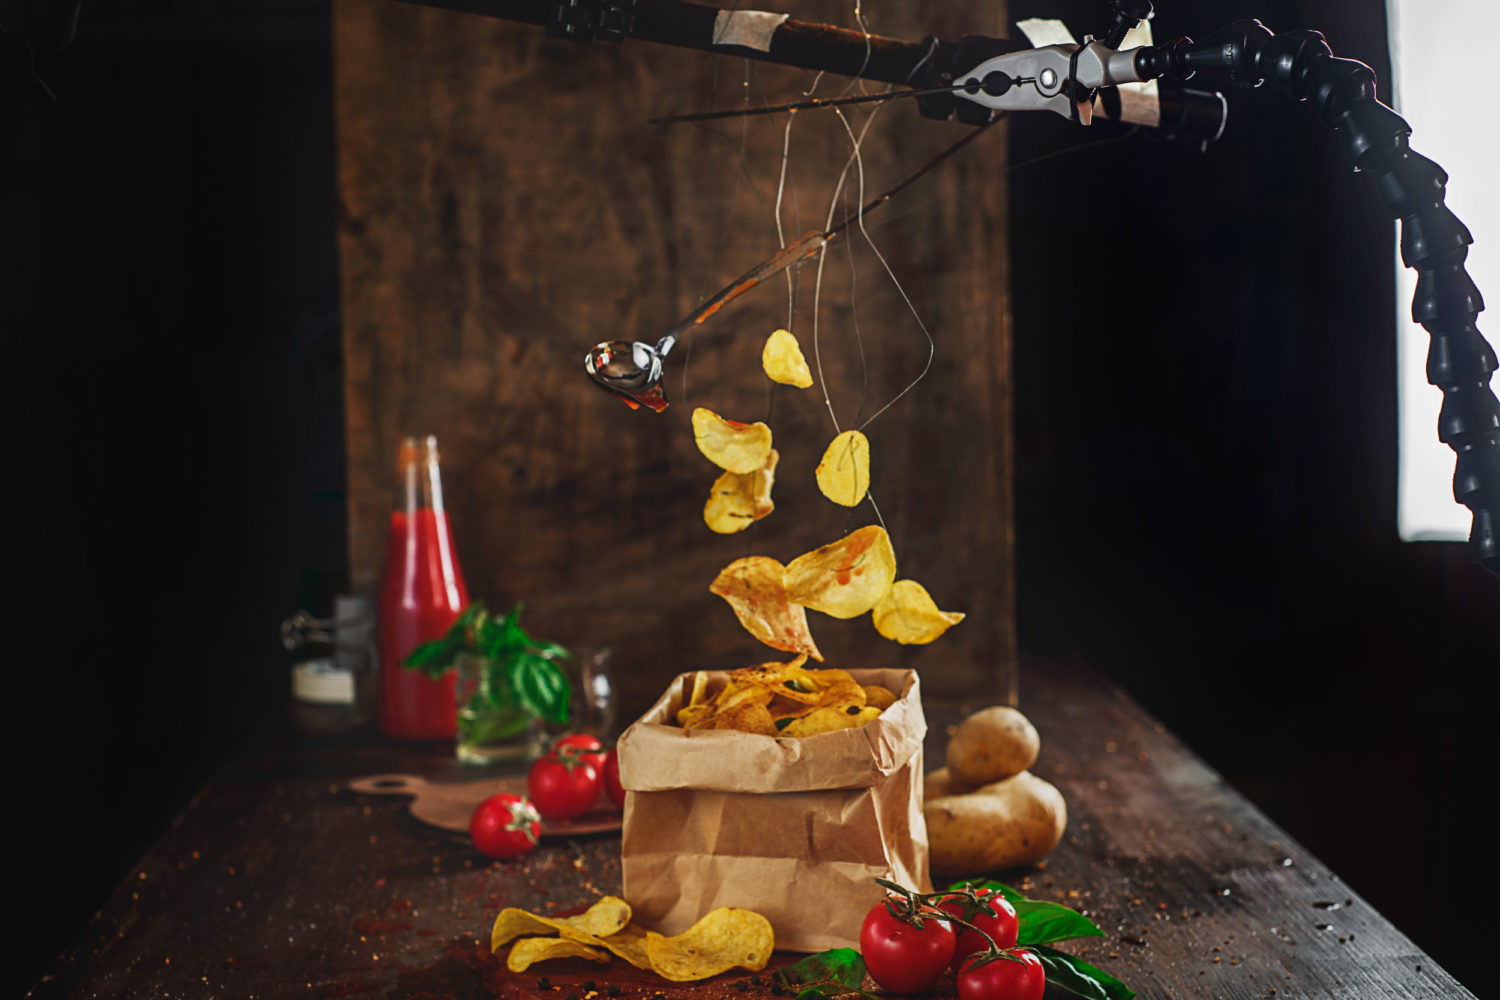 [Levitation Photography Tutorial] How To Make Food Levitate In Your Still Life Photos